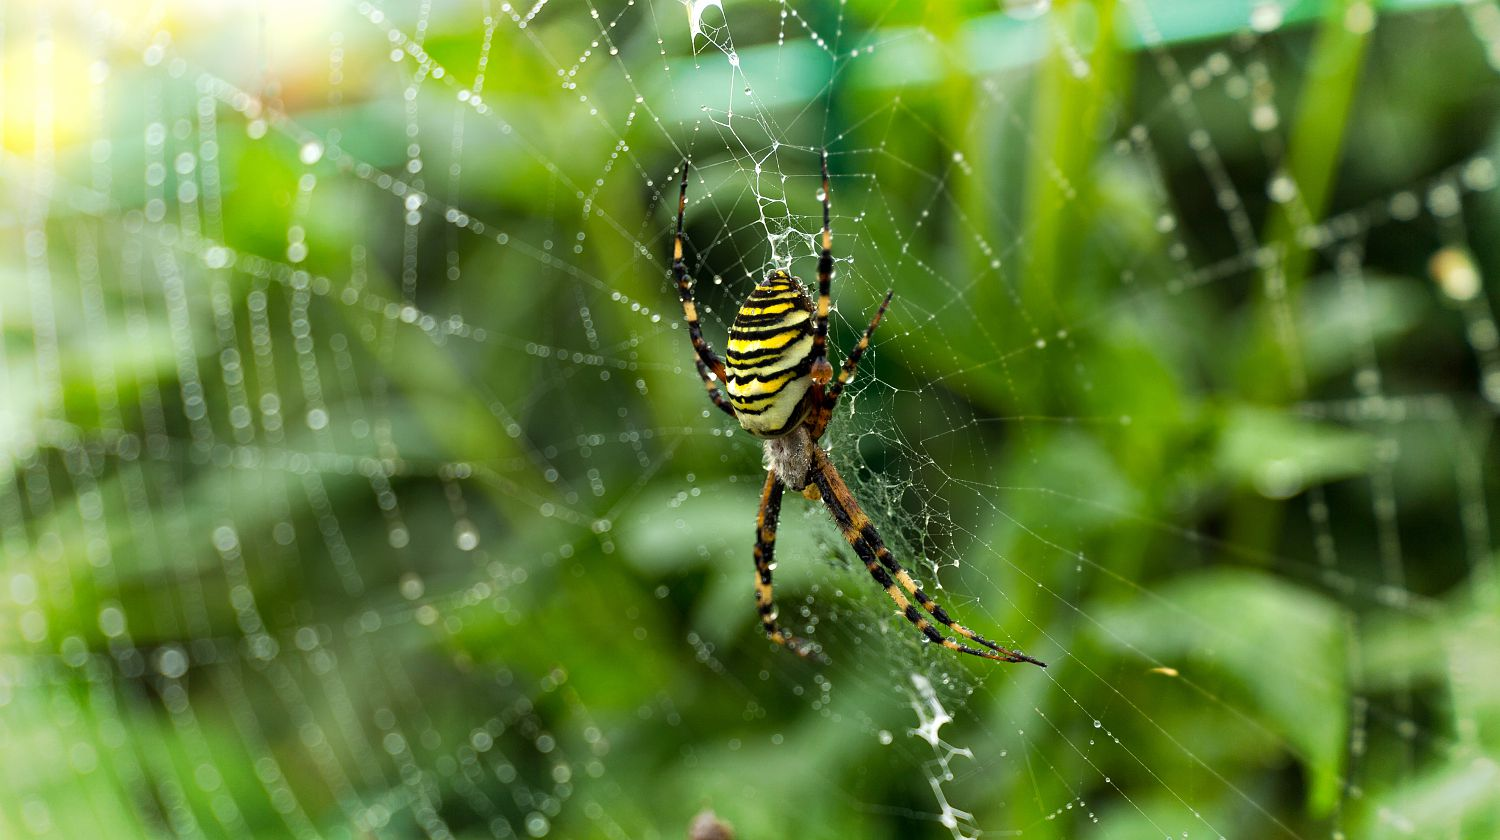 Spider on web | Natural Ways To Repel Spiders | Featured